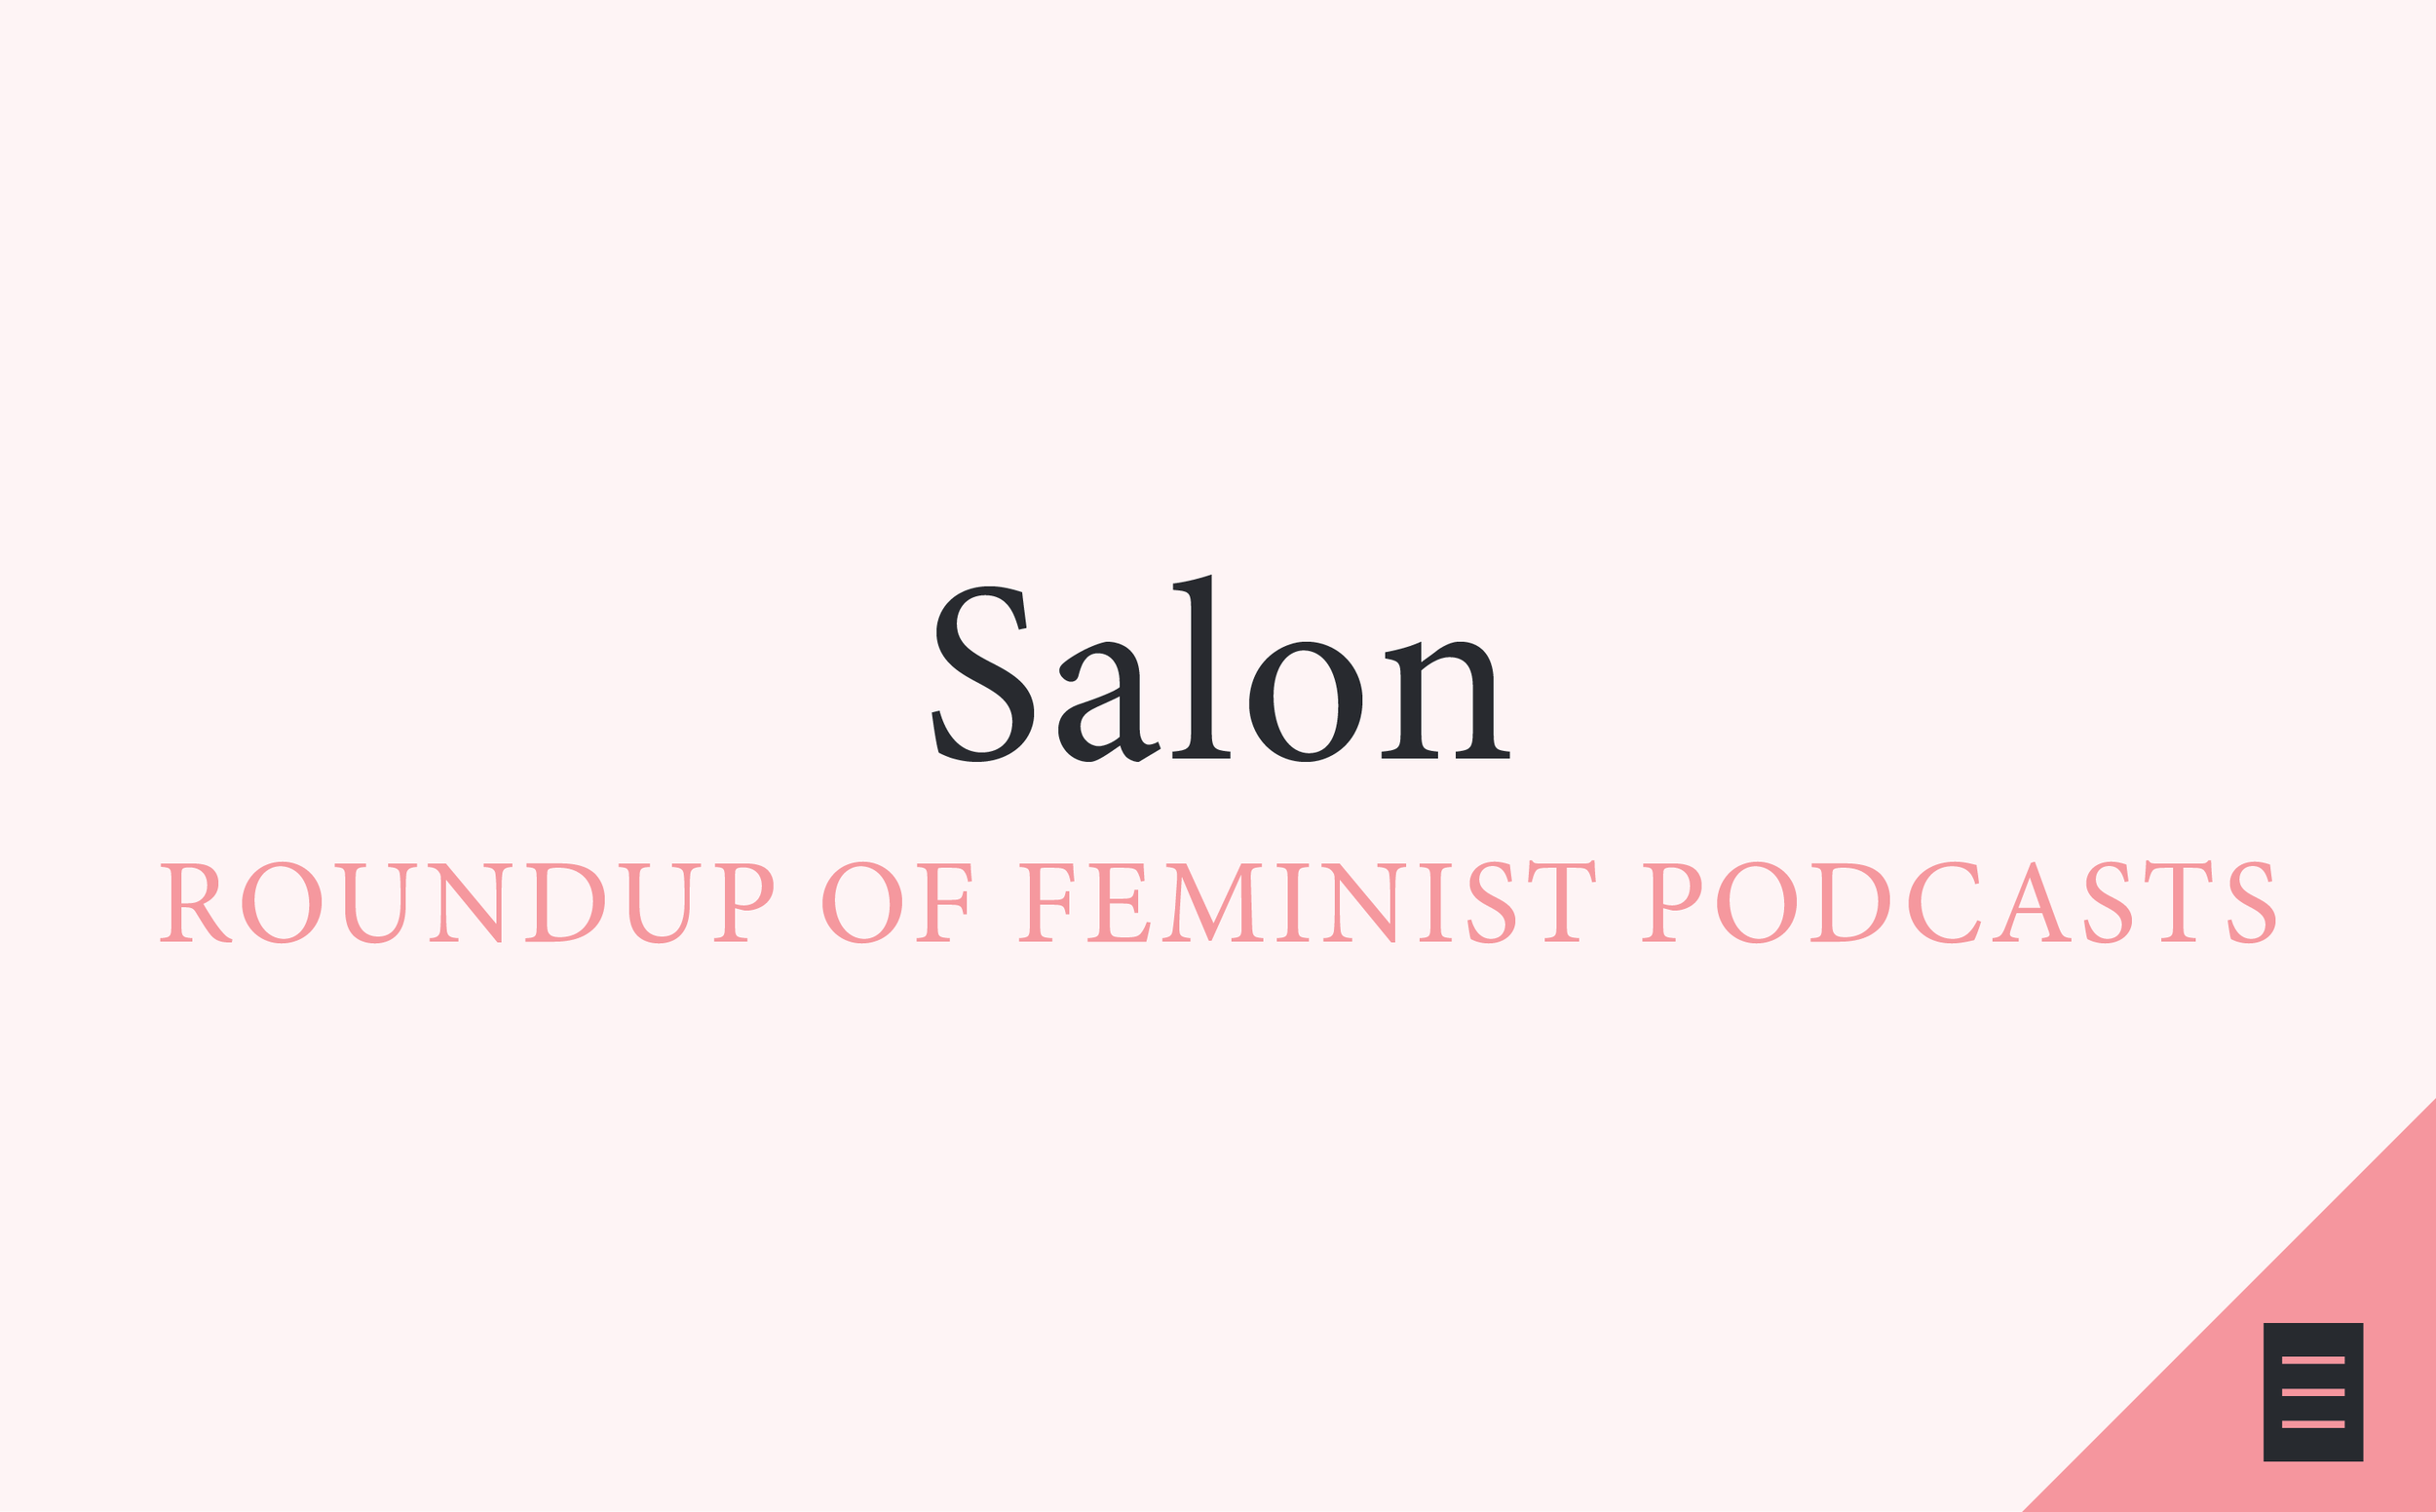 salon, the heart, salon.com, kaitlin prest, feminist podcasts, best of podcasts, best feminist podcasts, sexy podcasts